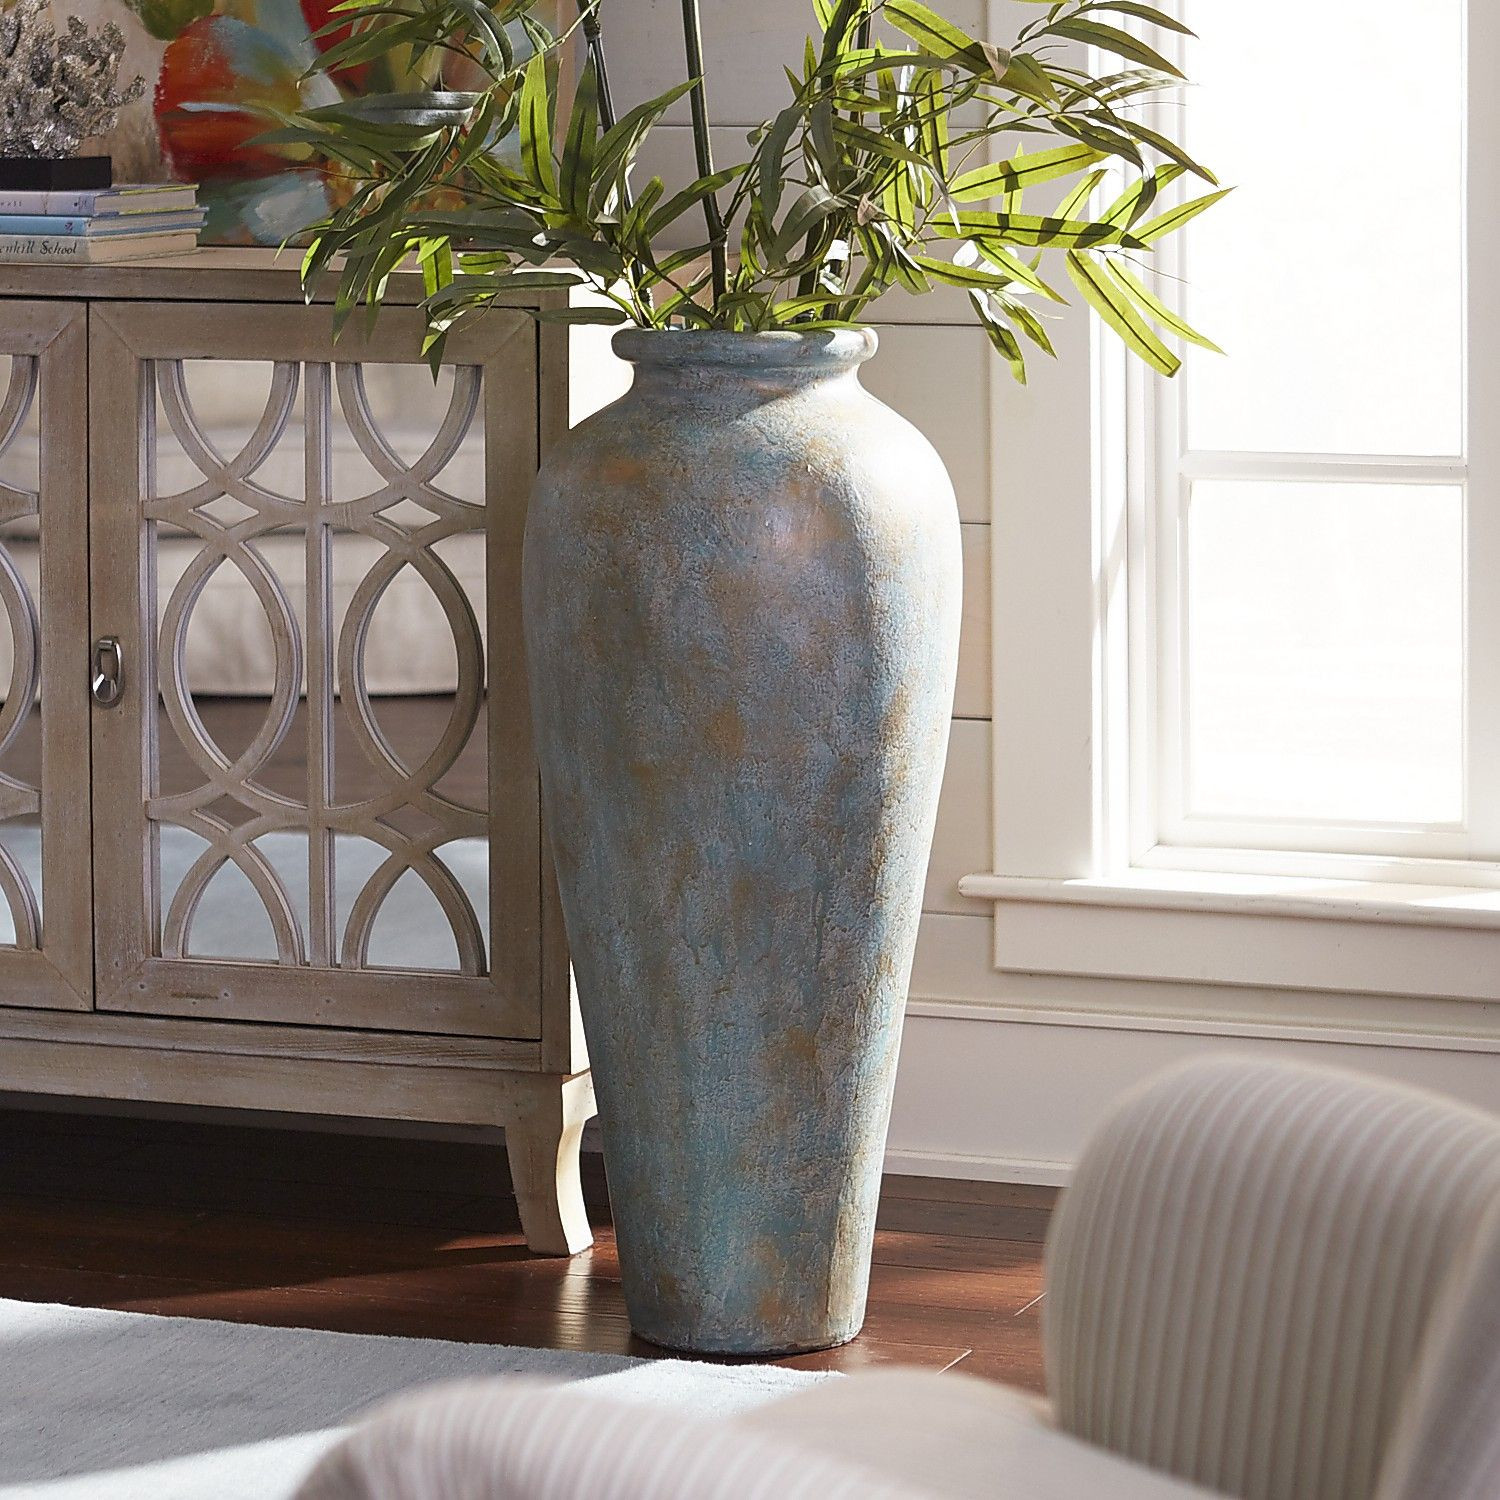 decorative floor vase flowers of blue green patina urn floor vase products pinterest flooring with regard to blue green patina urn floor vase